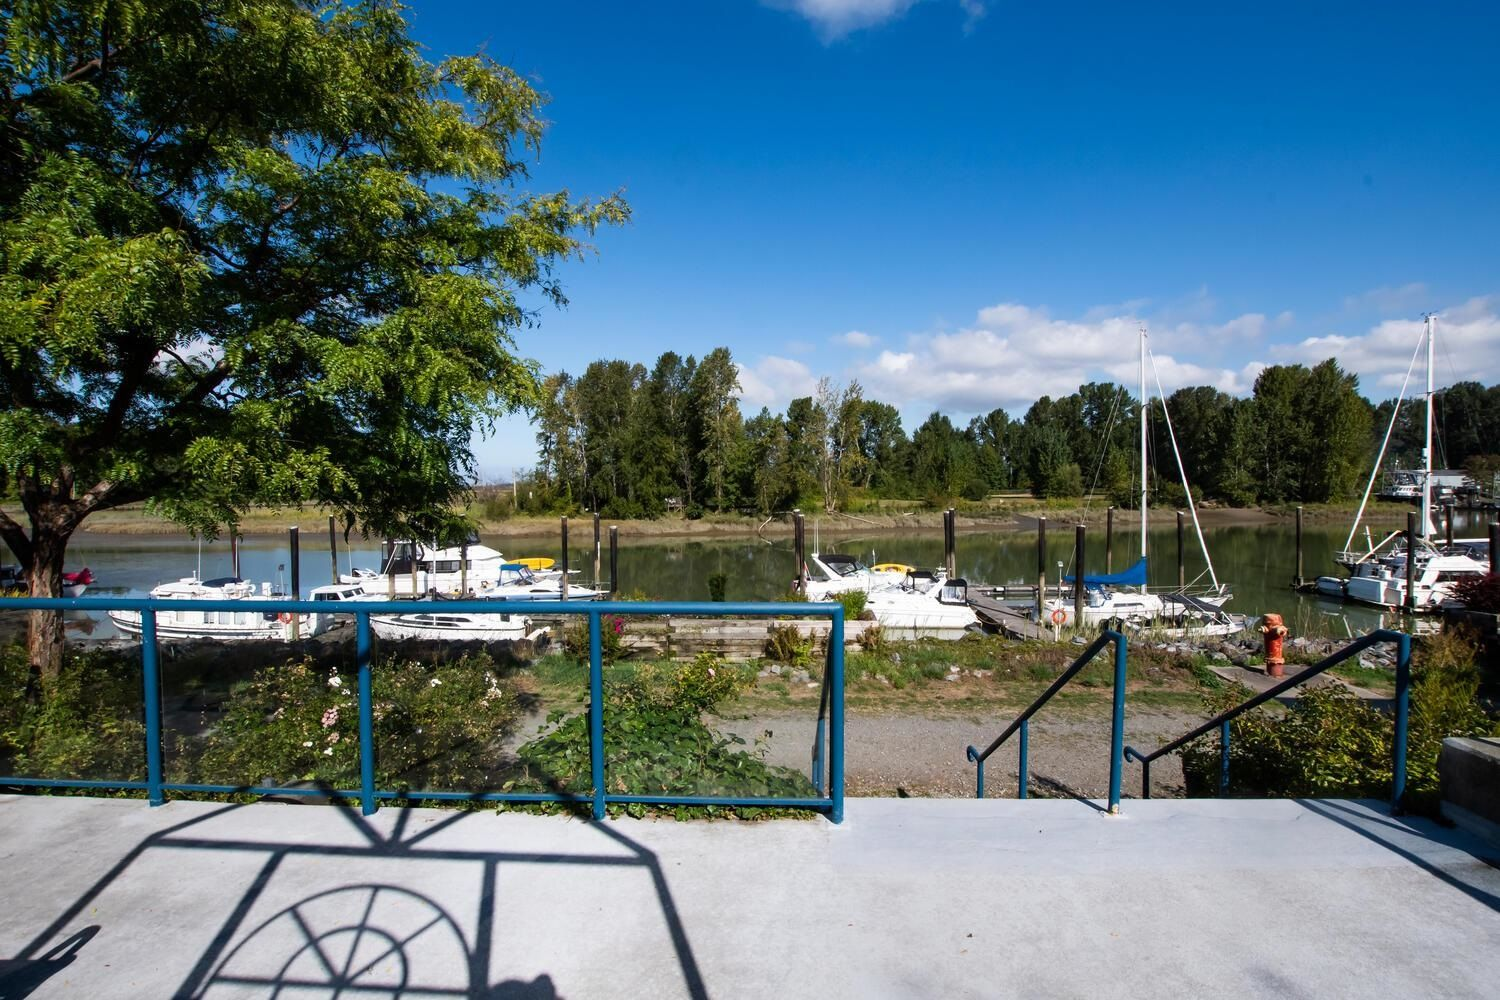 """Main Photo: 108 4733 W RIVER Road in Delta: Ladner Elementary Condo for sale in """"River West"""" (Ladner)  : MLS®# R2624756"""